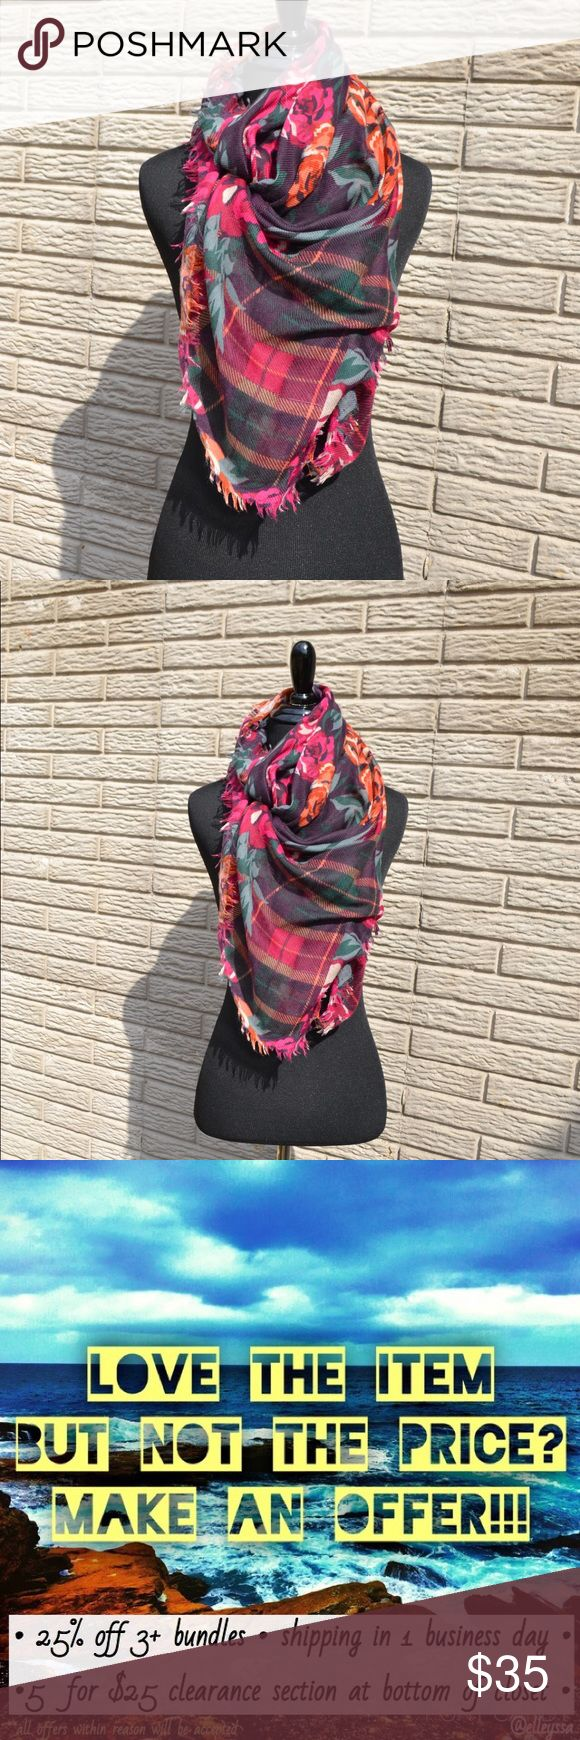 ••beautiful square fw sample scarf•• Beautiful fall colors • square scarf • worn once as a sample at Berlin fashion week in 2011  I have a few items in my closet, which are unbranded or marked as from Berlin, Germany. I lived there for two years and worked with Berlin fashion week, so I have sample pieces up for sale 💕 everything is high quality and locally designed/made. They look to sell to high end designers and department stores, such as Theory, Helmut Lang, and Nordstrom  Open to…